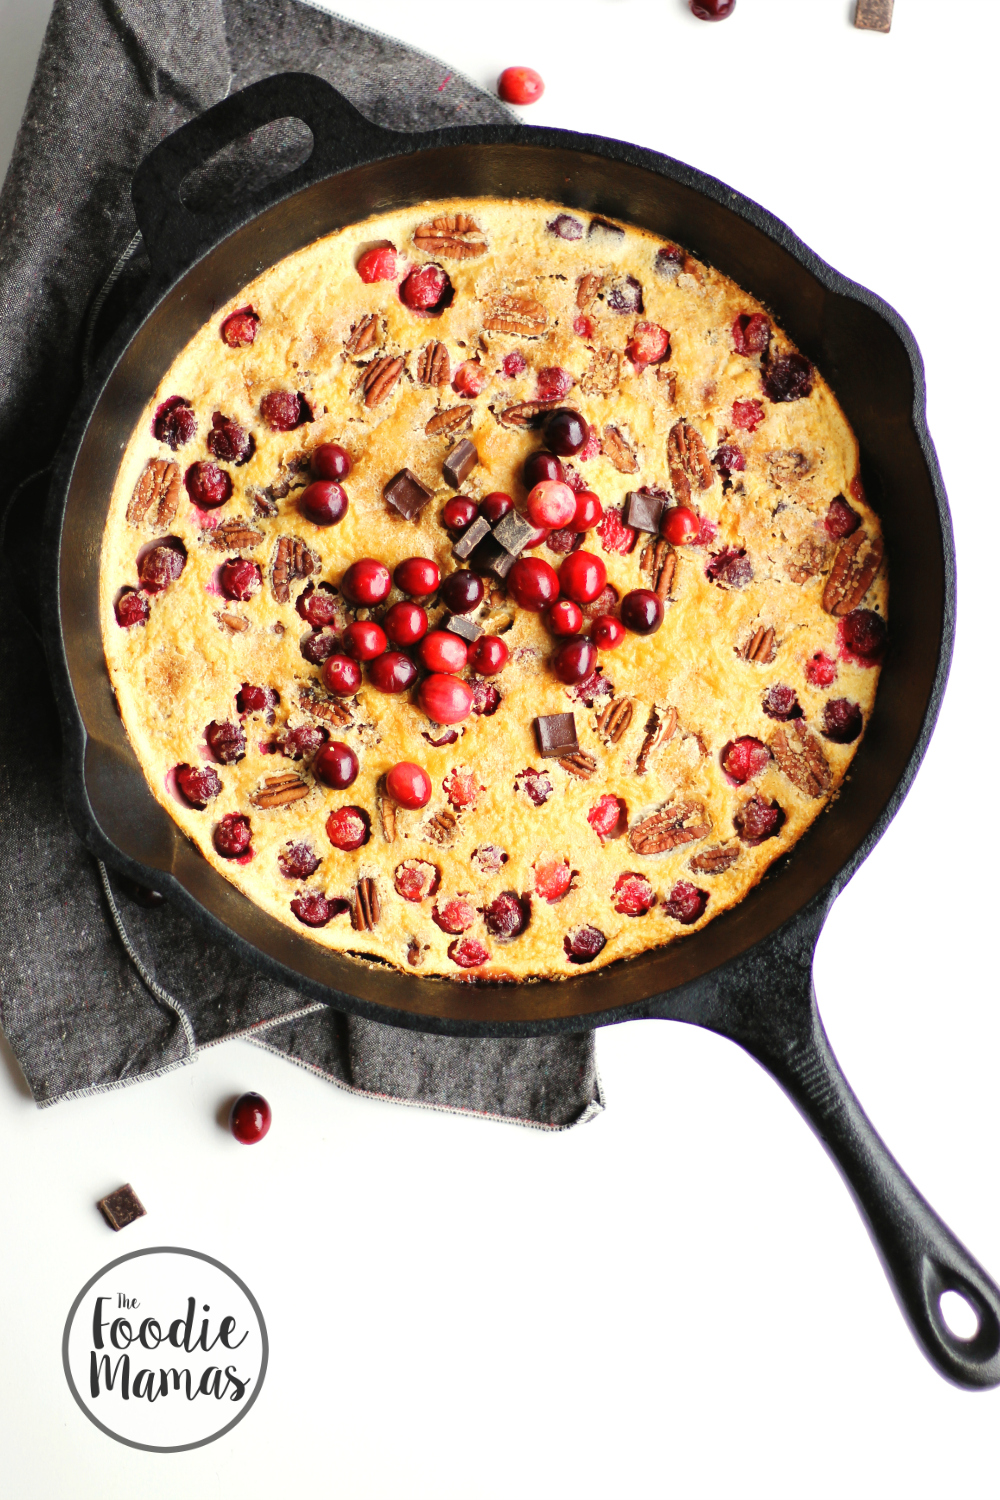 Cranberry-clafoutis-with-dark-chocolate-and-pecans-watermark.jpg